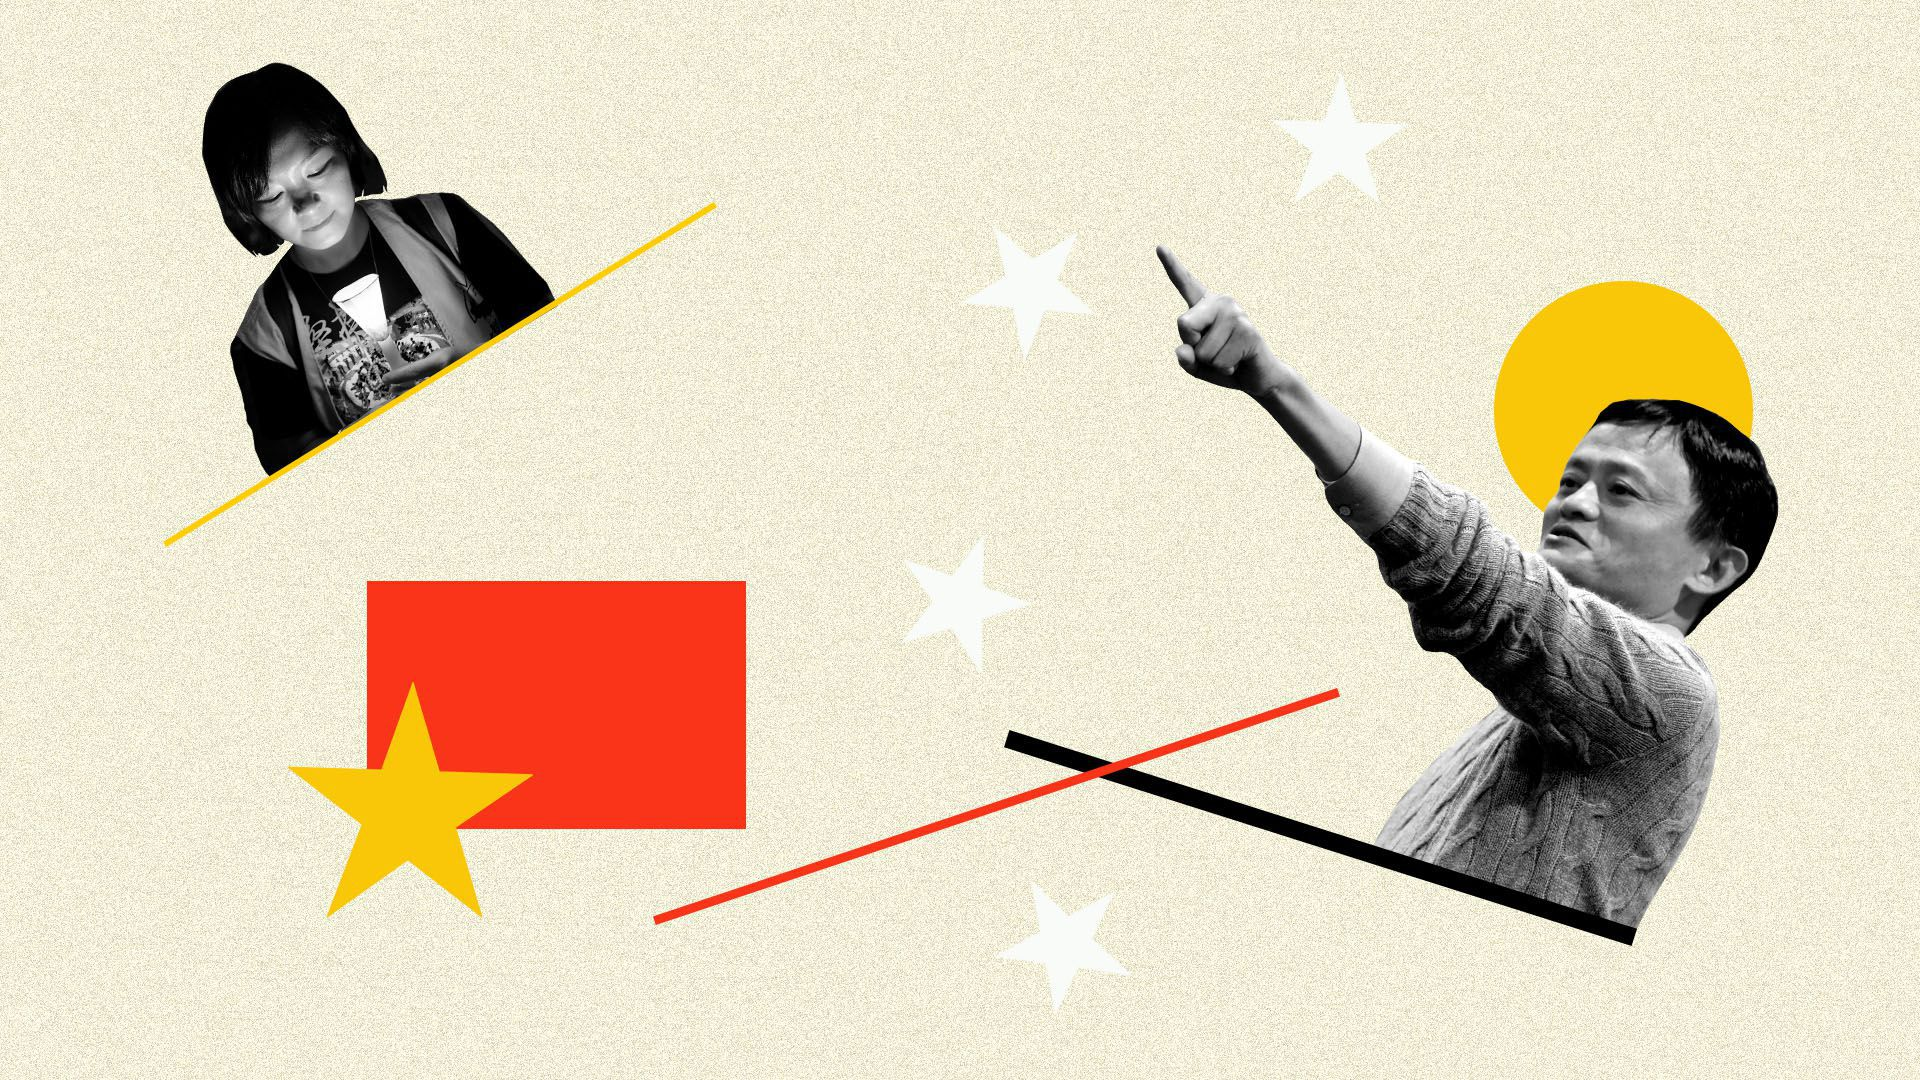 China's growth is driven by communist capitalism